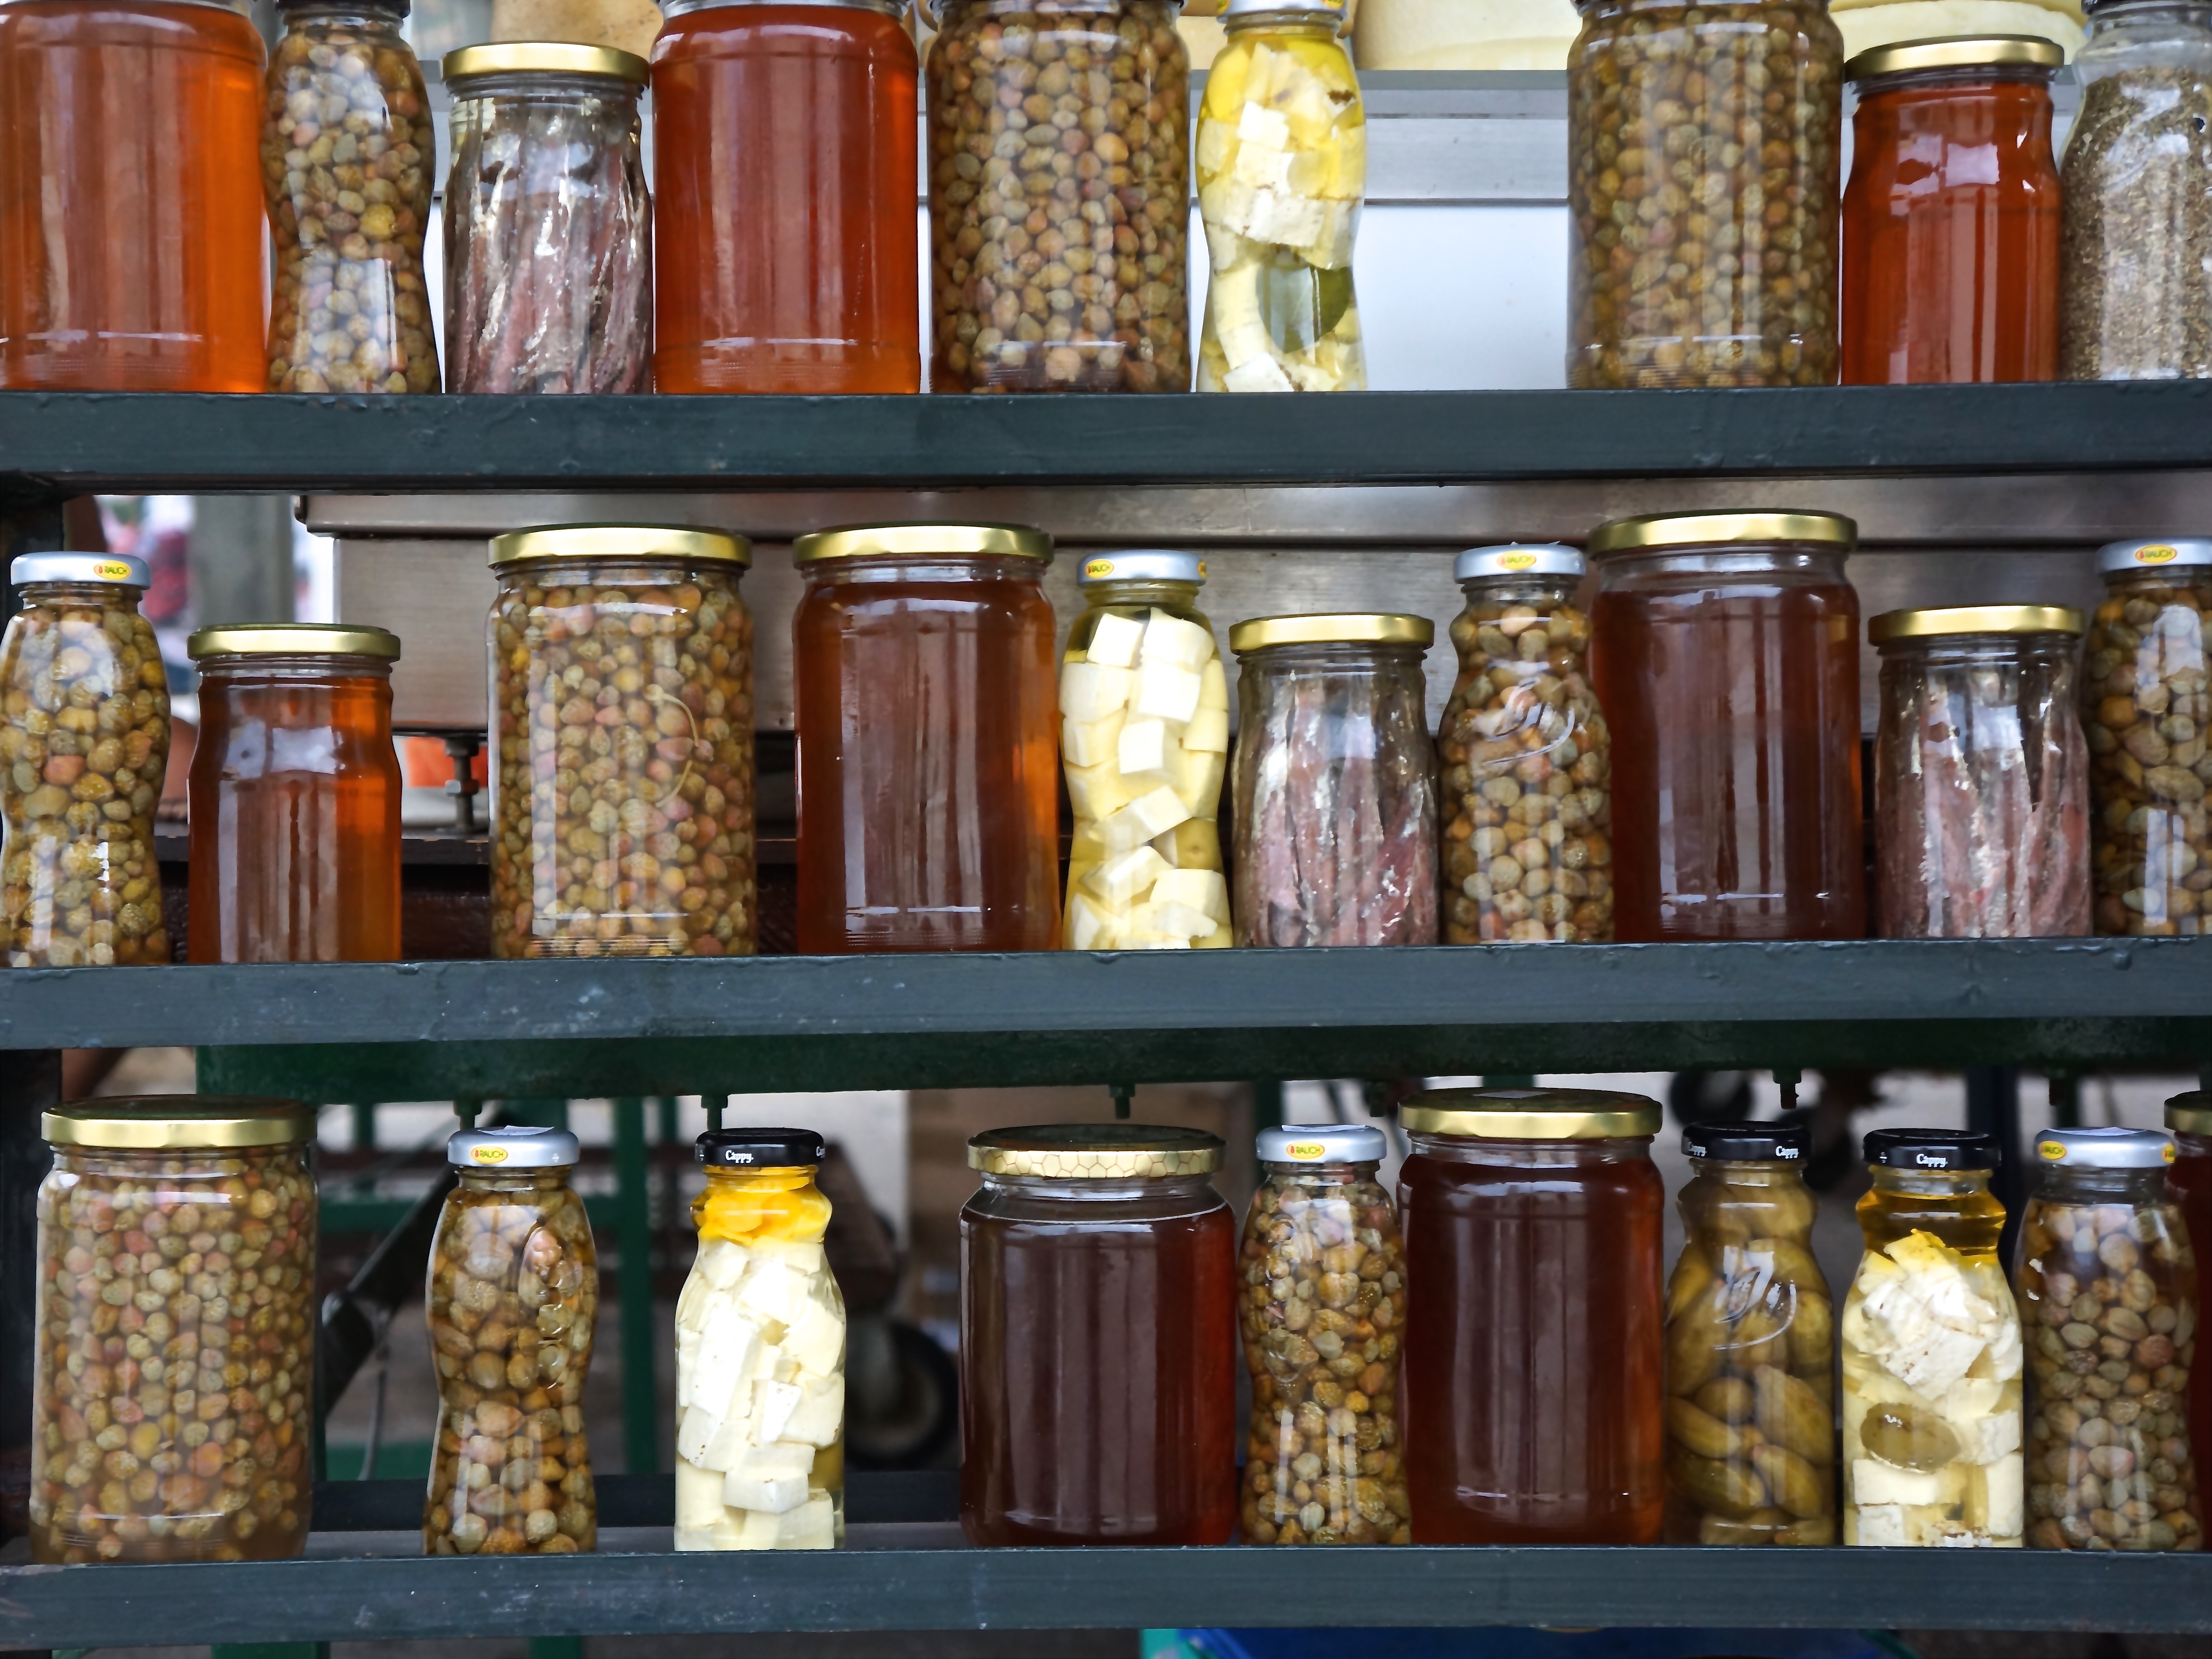 Capers, honey and anchovies are just a few items in which the local merchants pride themselves.